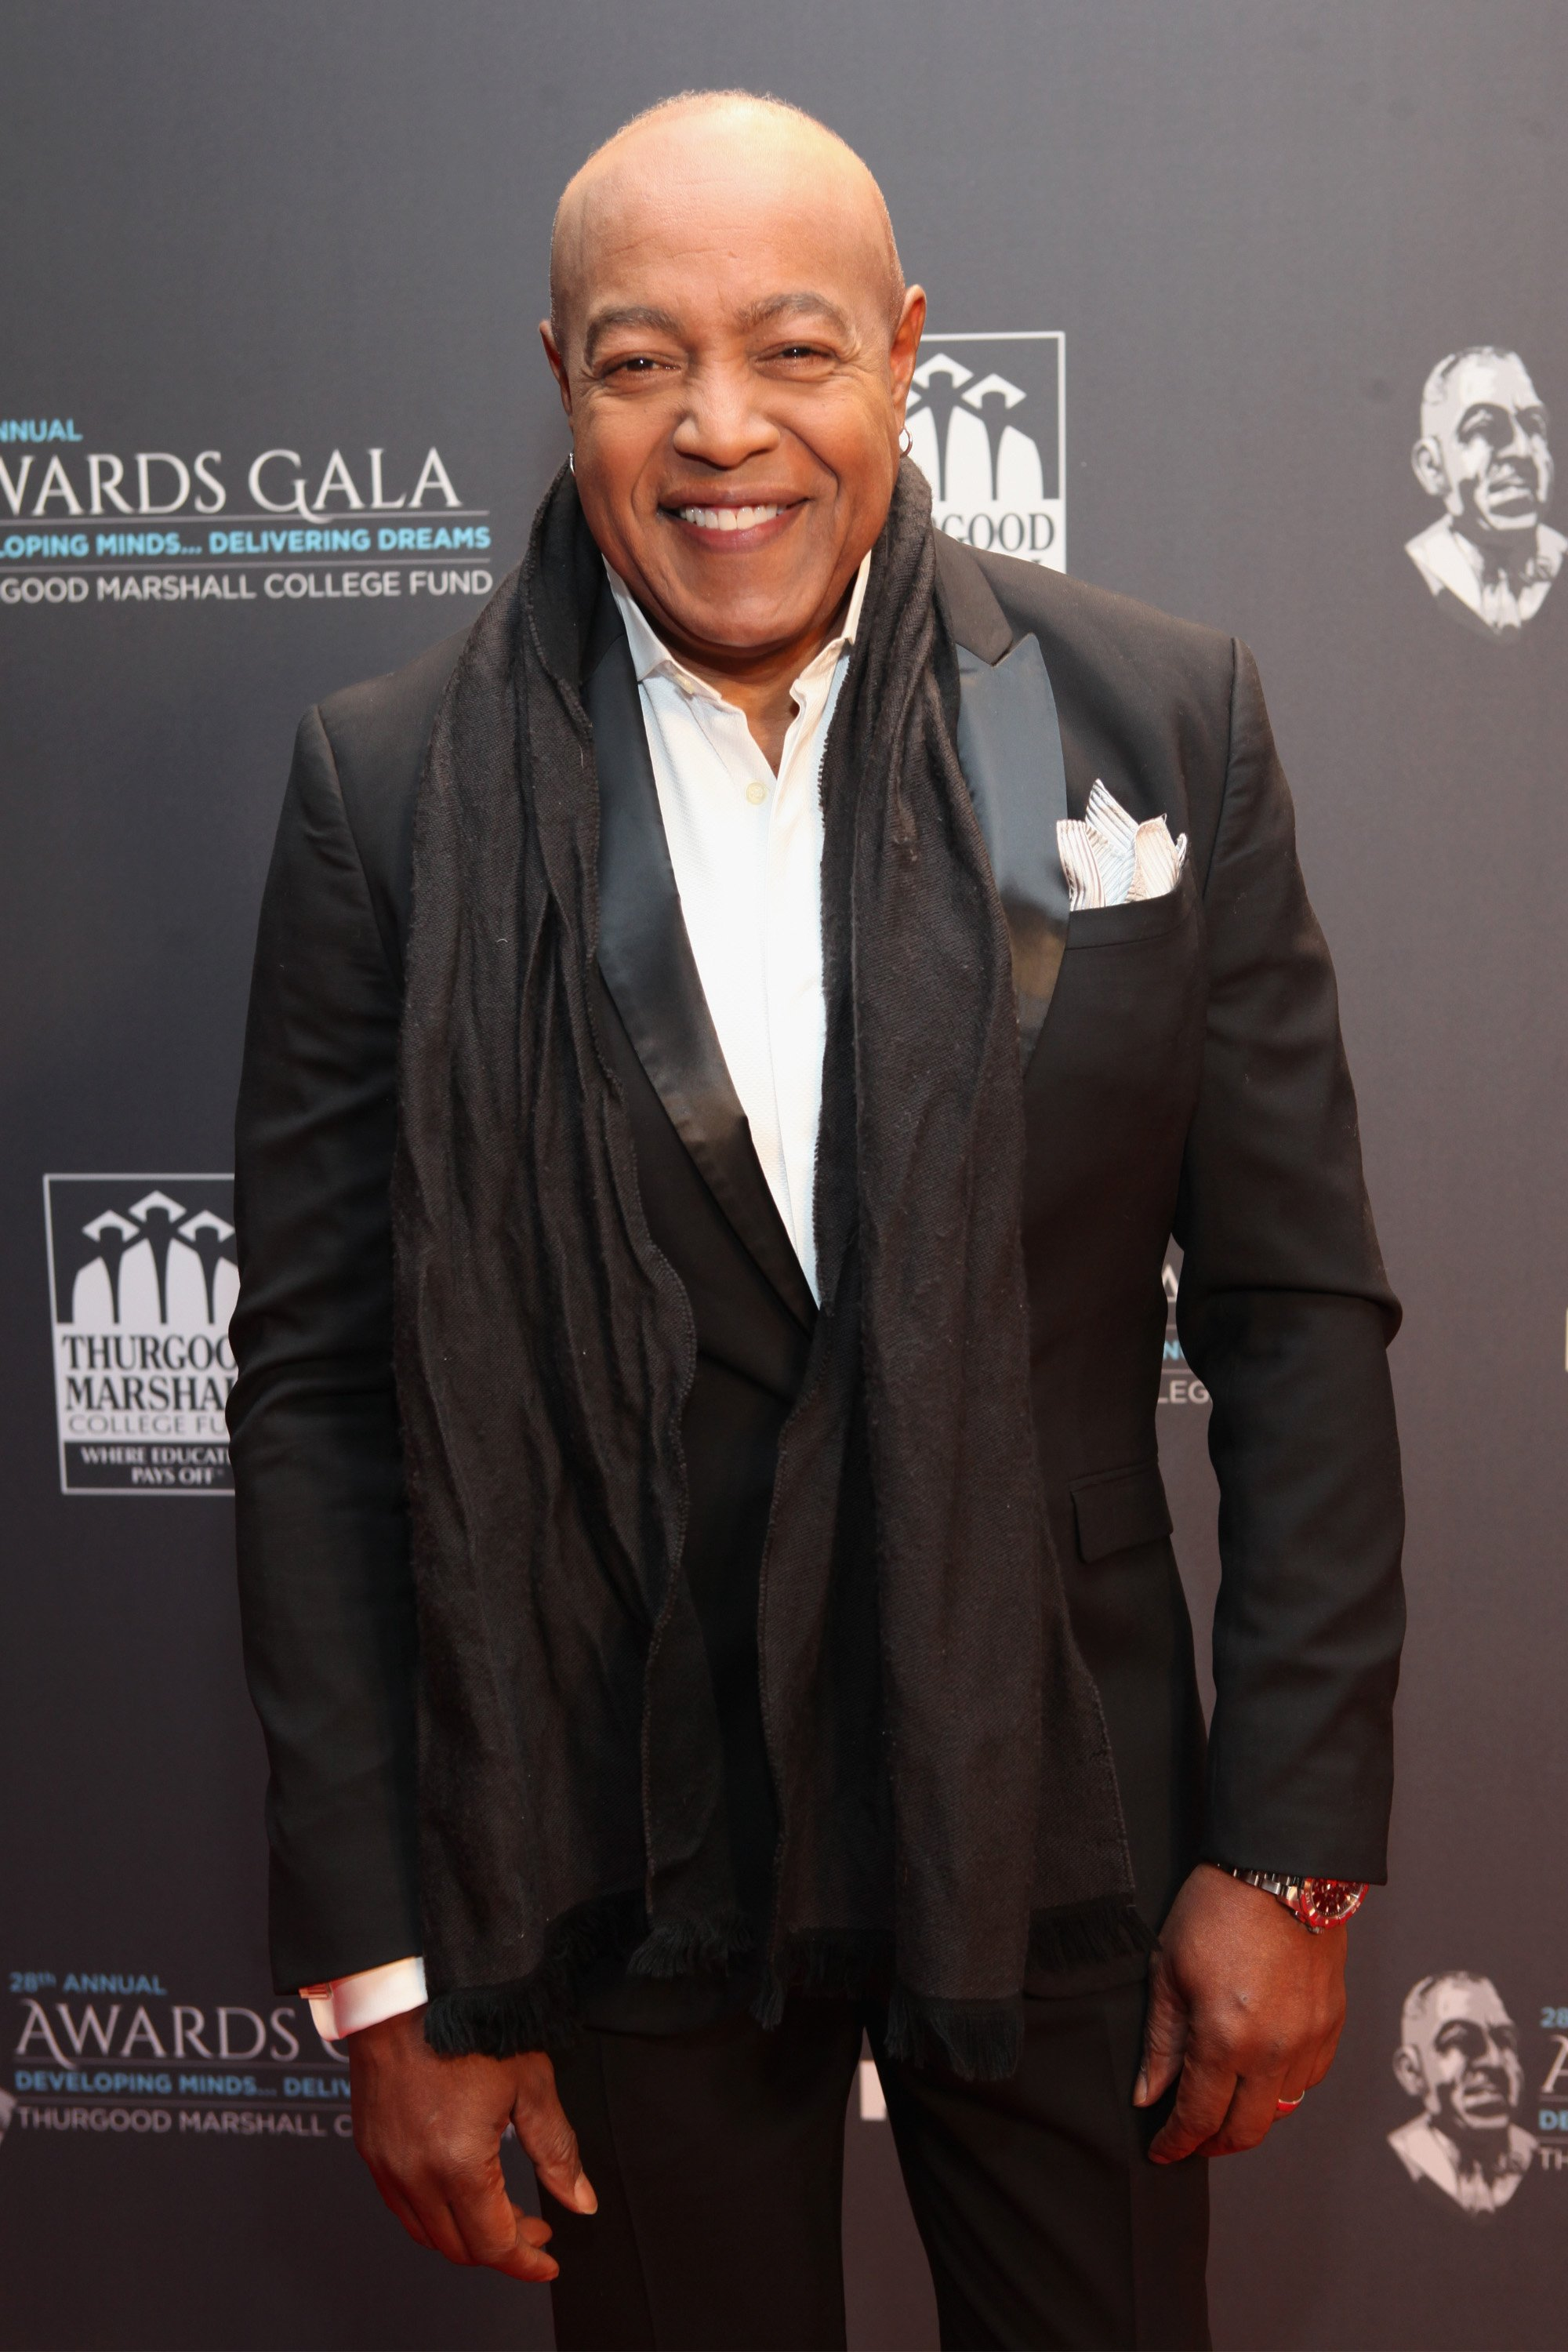 Peabo Bryson at the Thurgood Marshall College Fund 28th Annual Awards Gala at Washington Hilton on November 21, 2016 in Washington, DC.   Source: Getty Images